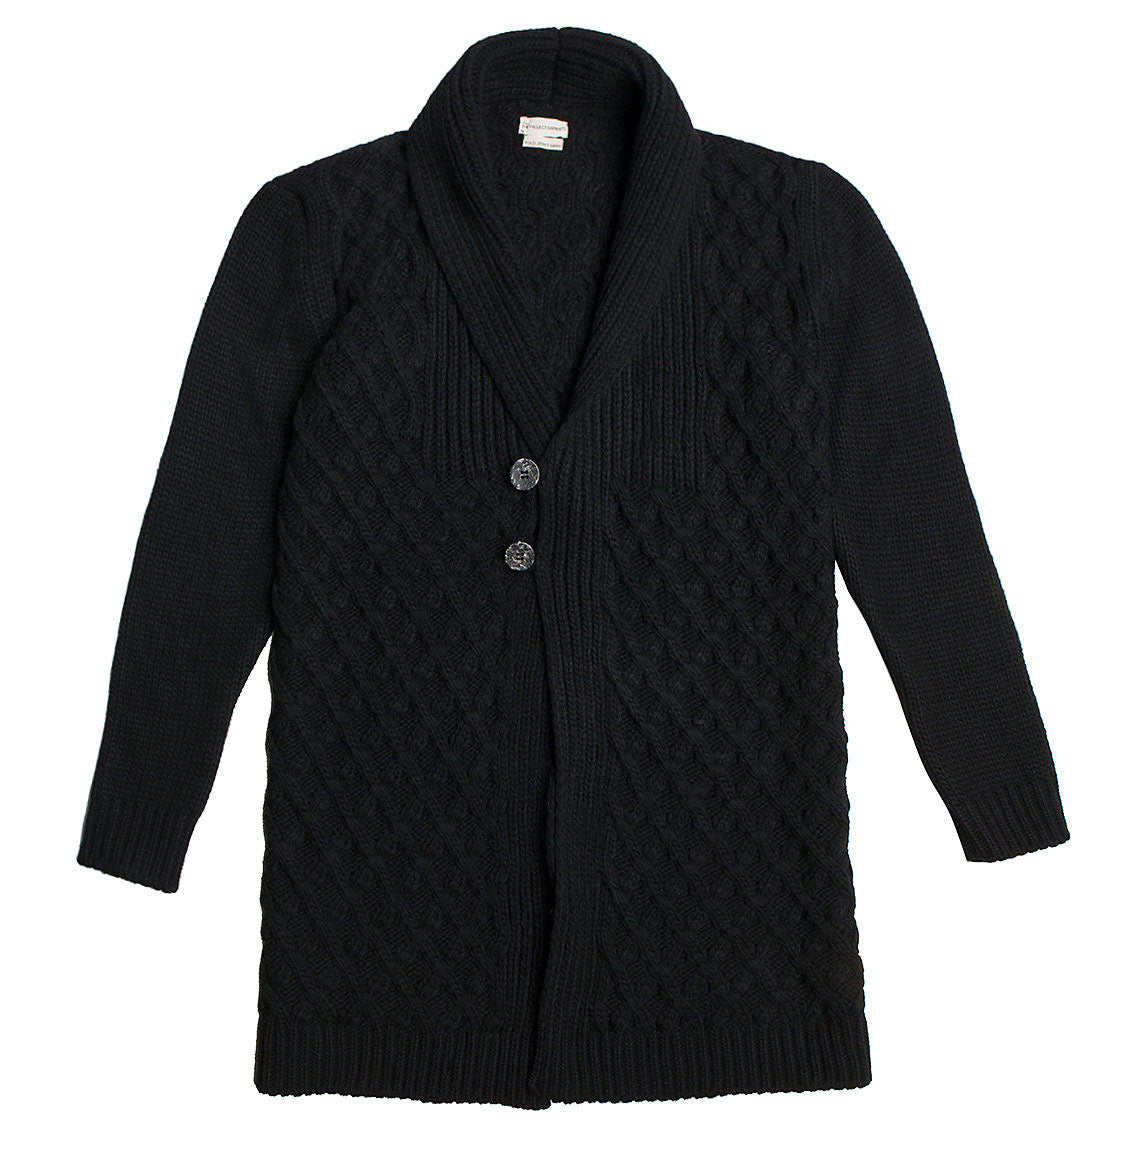 Men's Two Button Shawl Collar Wool Blend Cardigan Black | The Project Garments Product